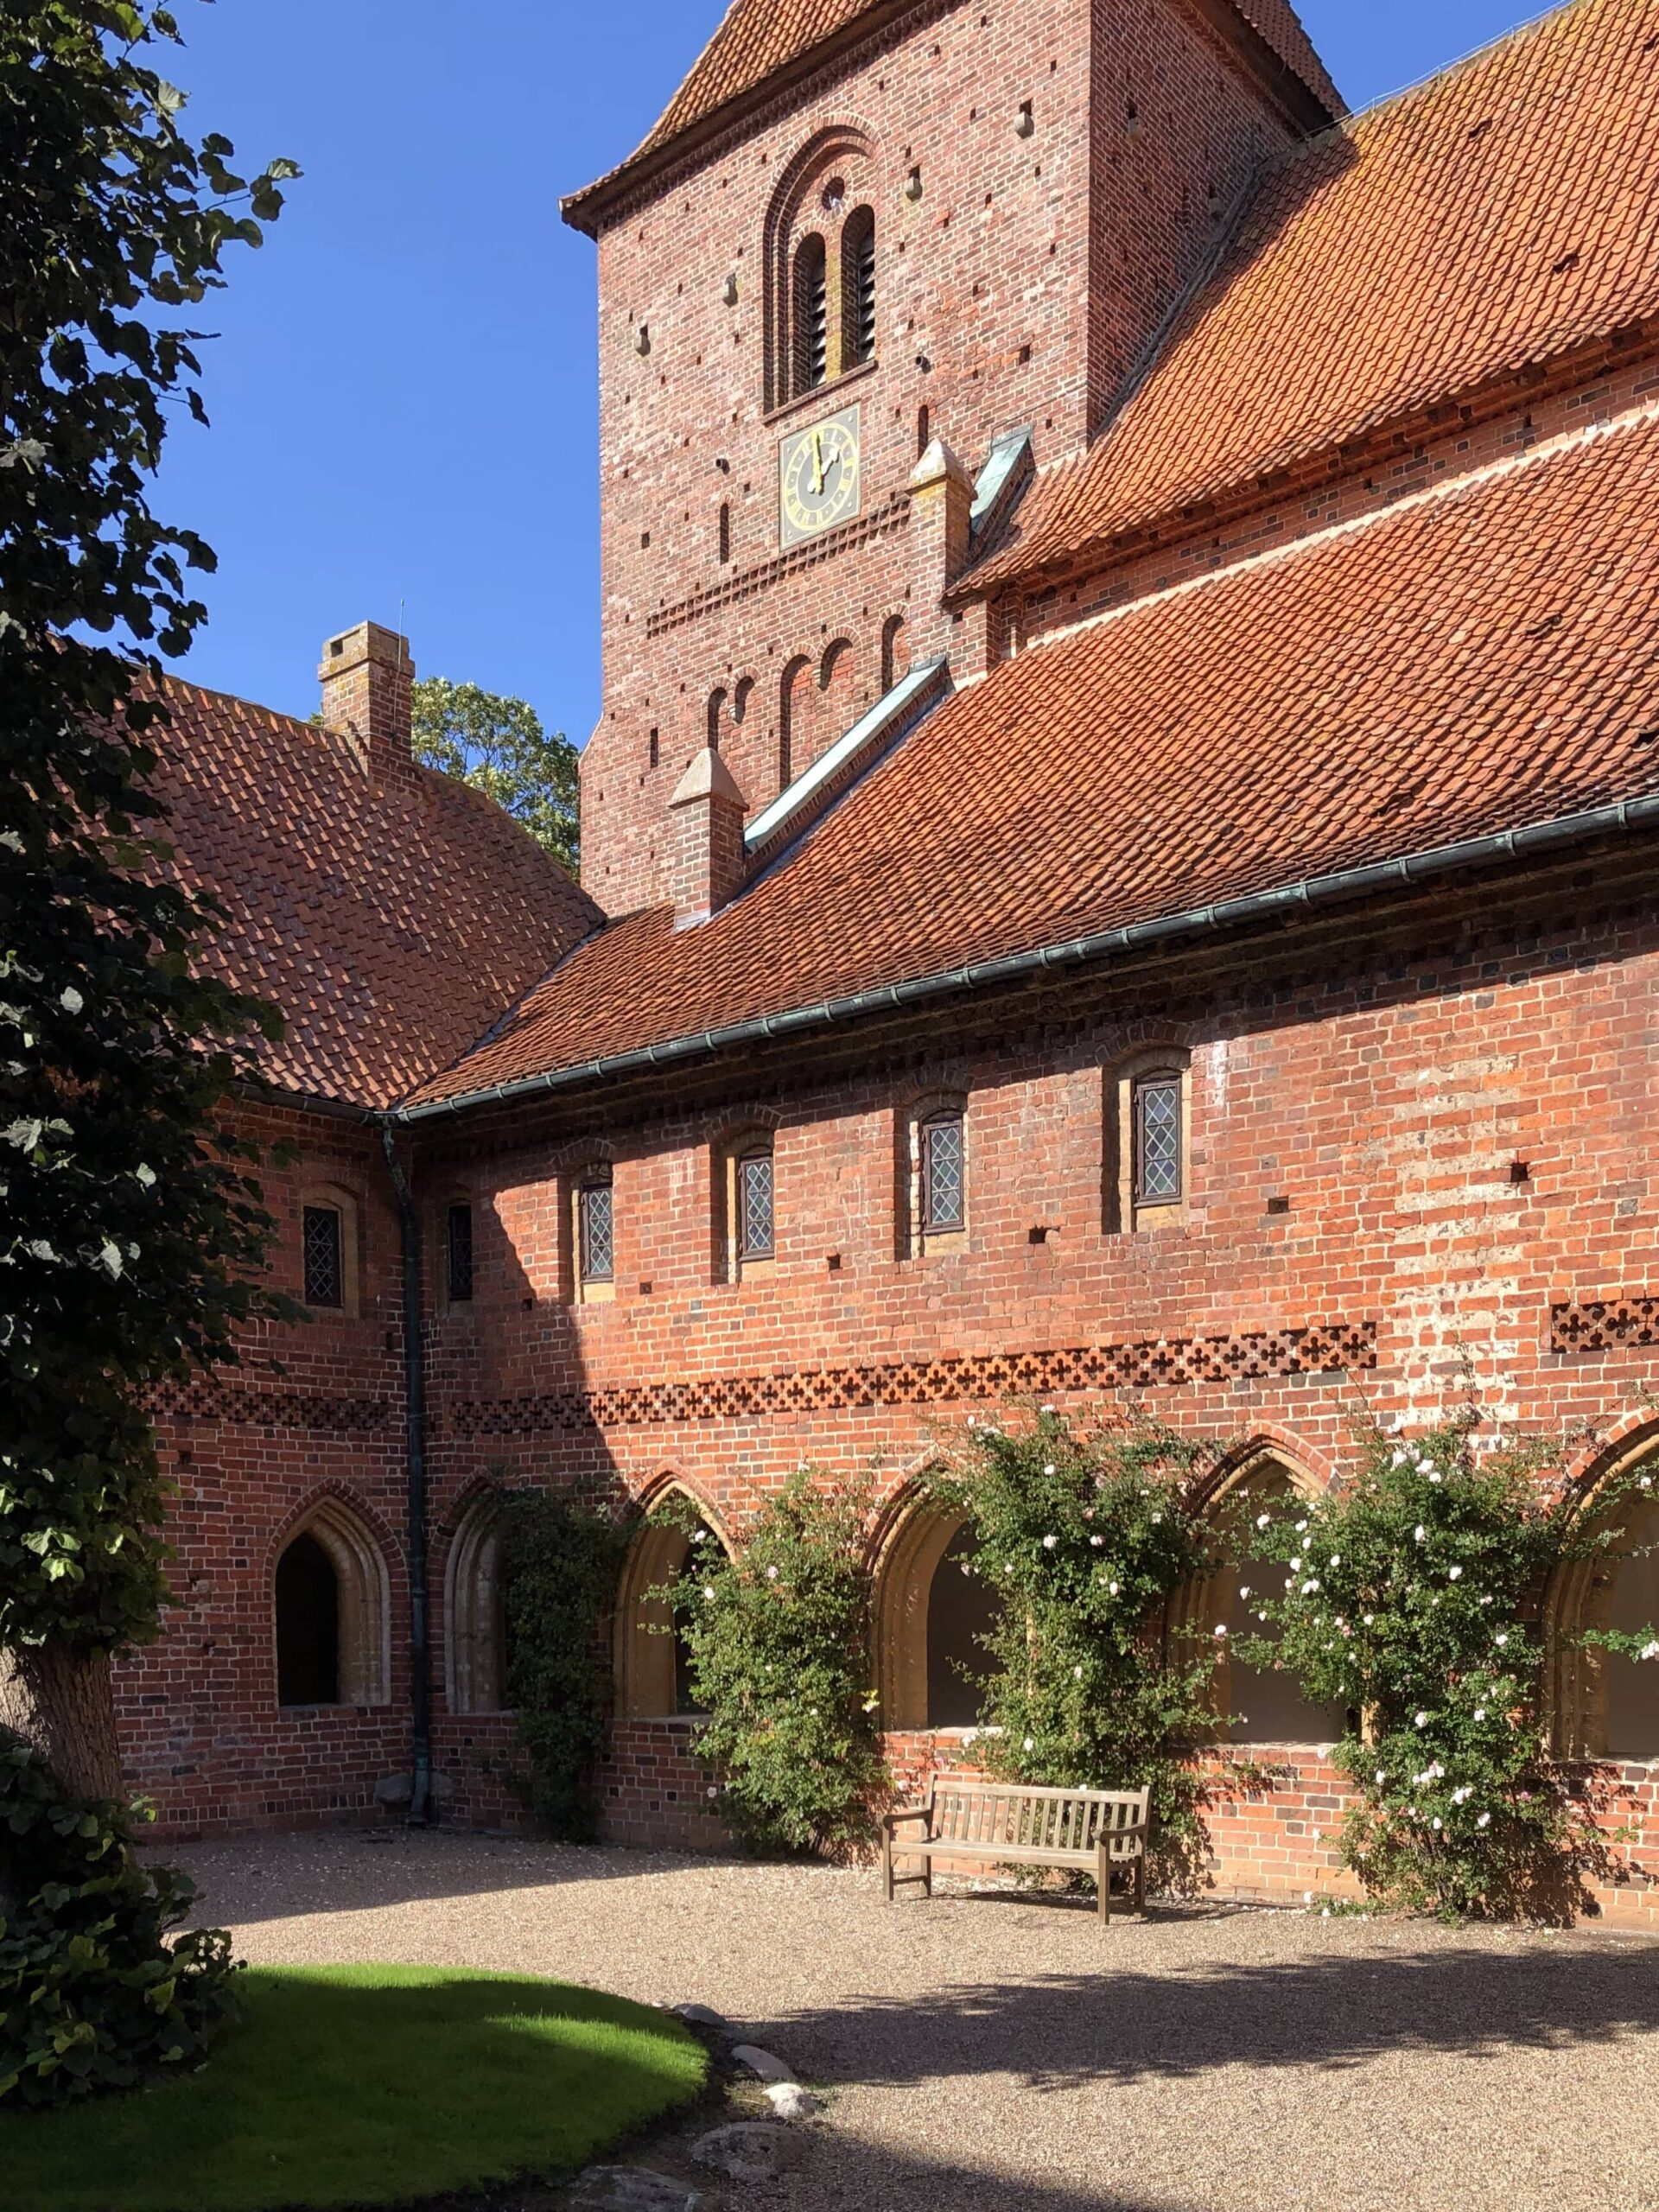 Ribe Kloster